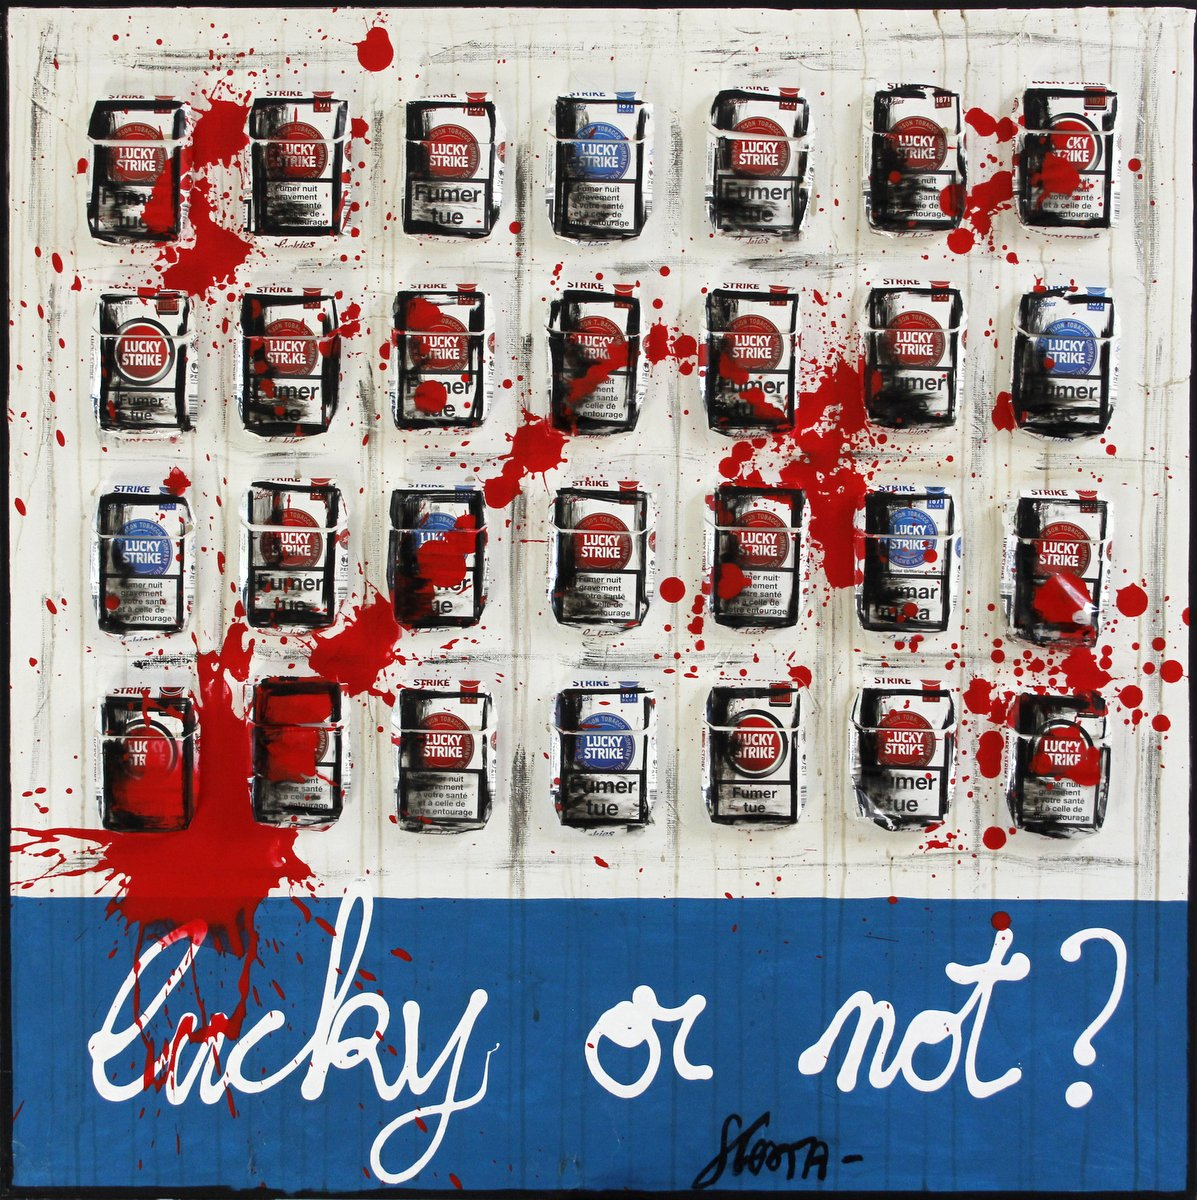 lucky strike, collage Tableau Contemporain, LUCKY OR NOT? #3. Sophie Costa, artiste peintre.